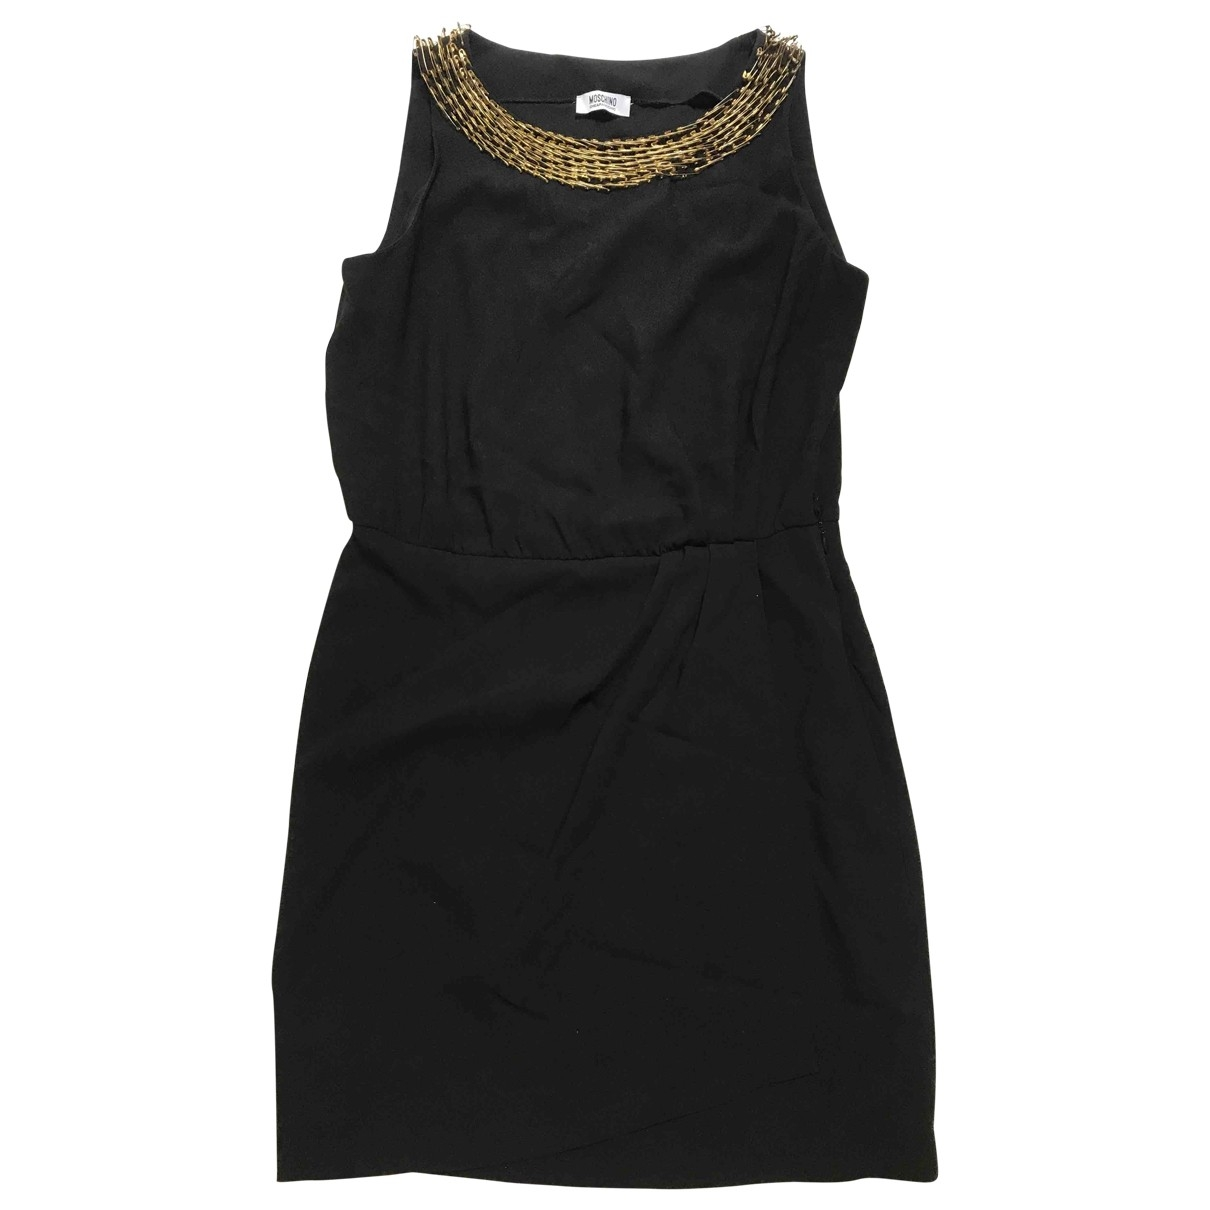 Moschino Cheap And Chic \N Black dress for Women 40 FR